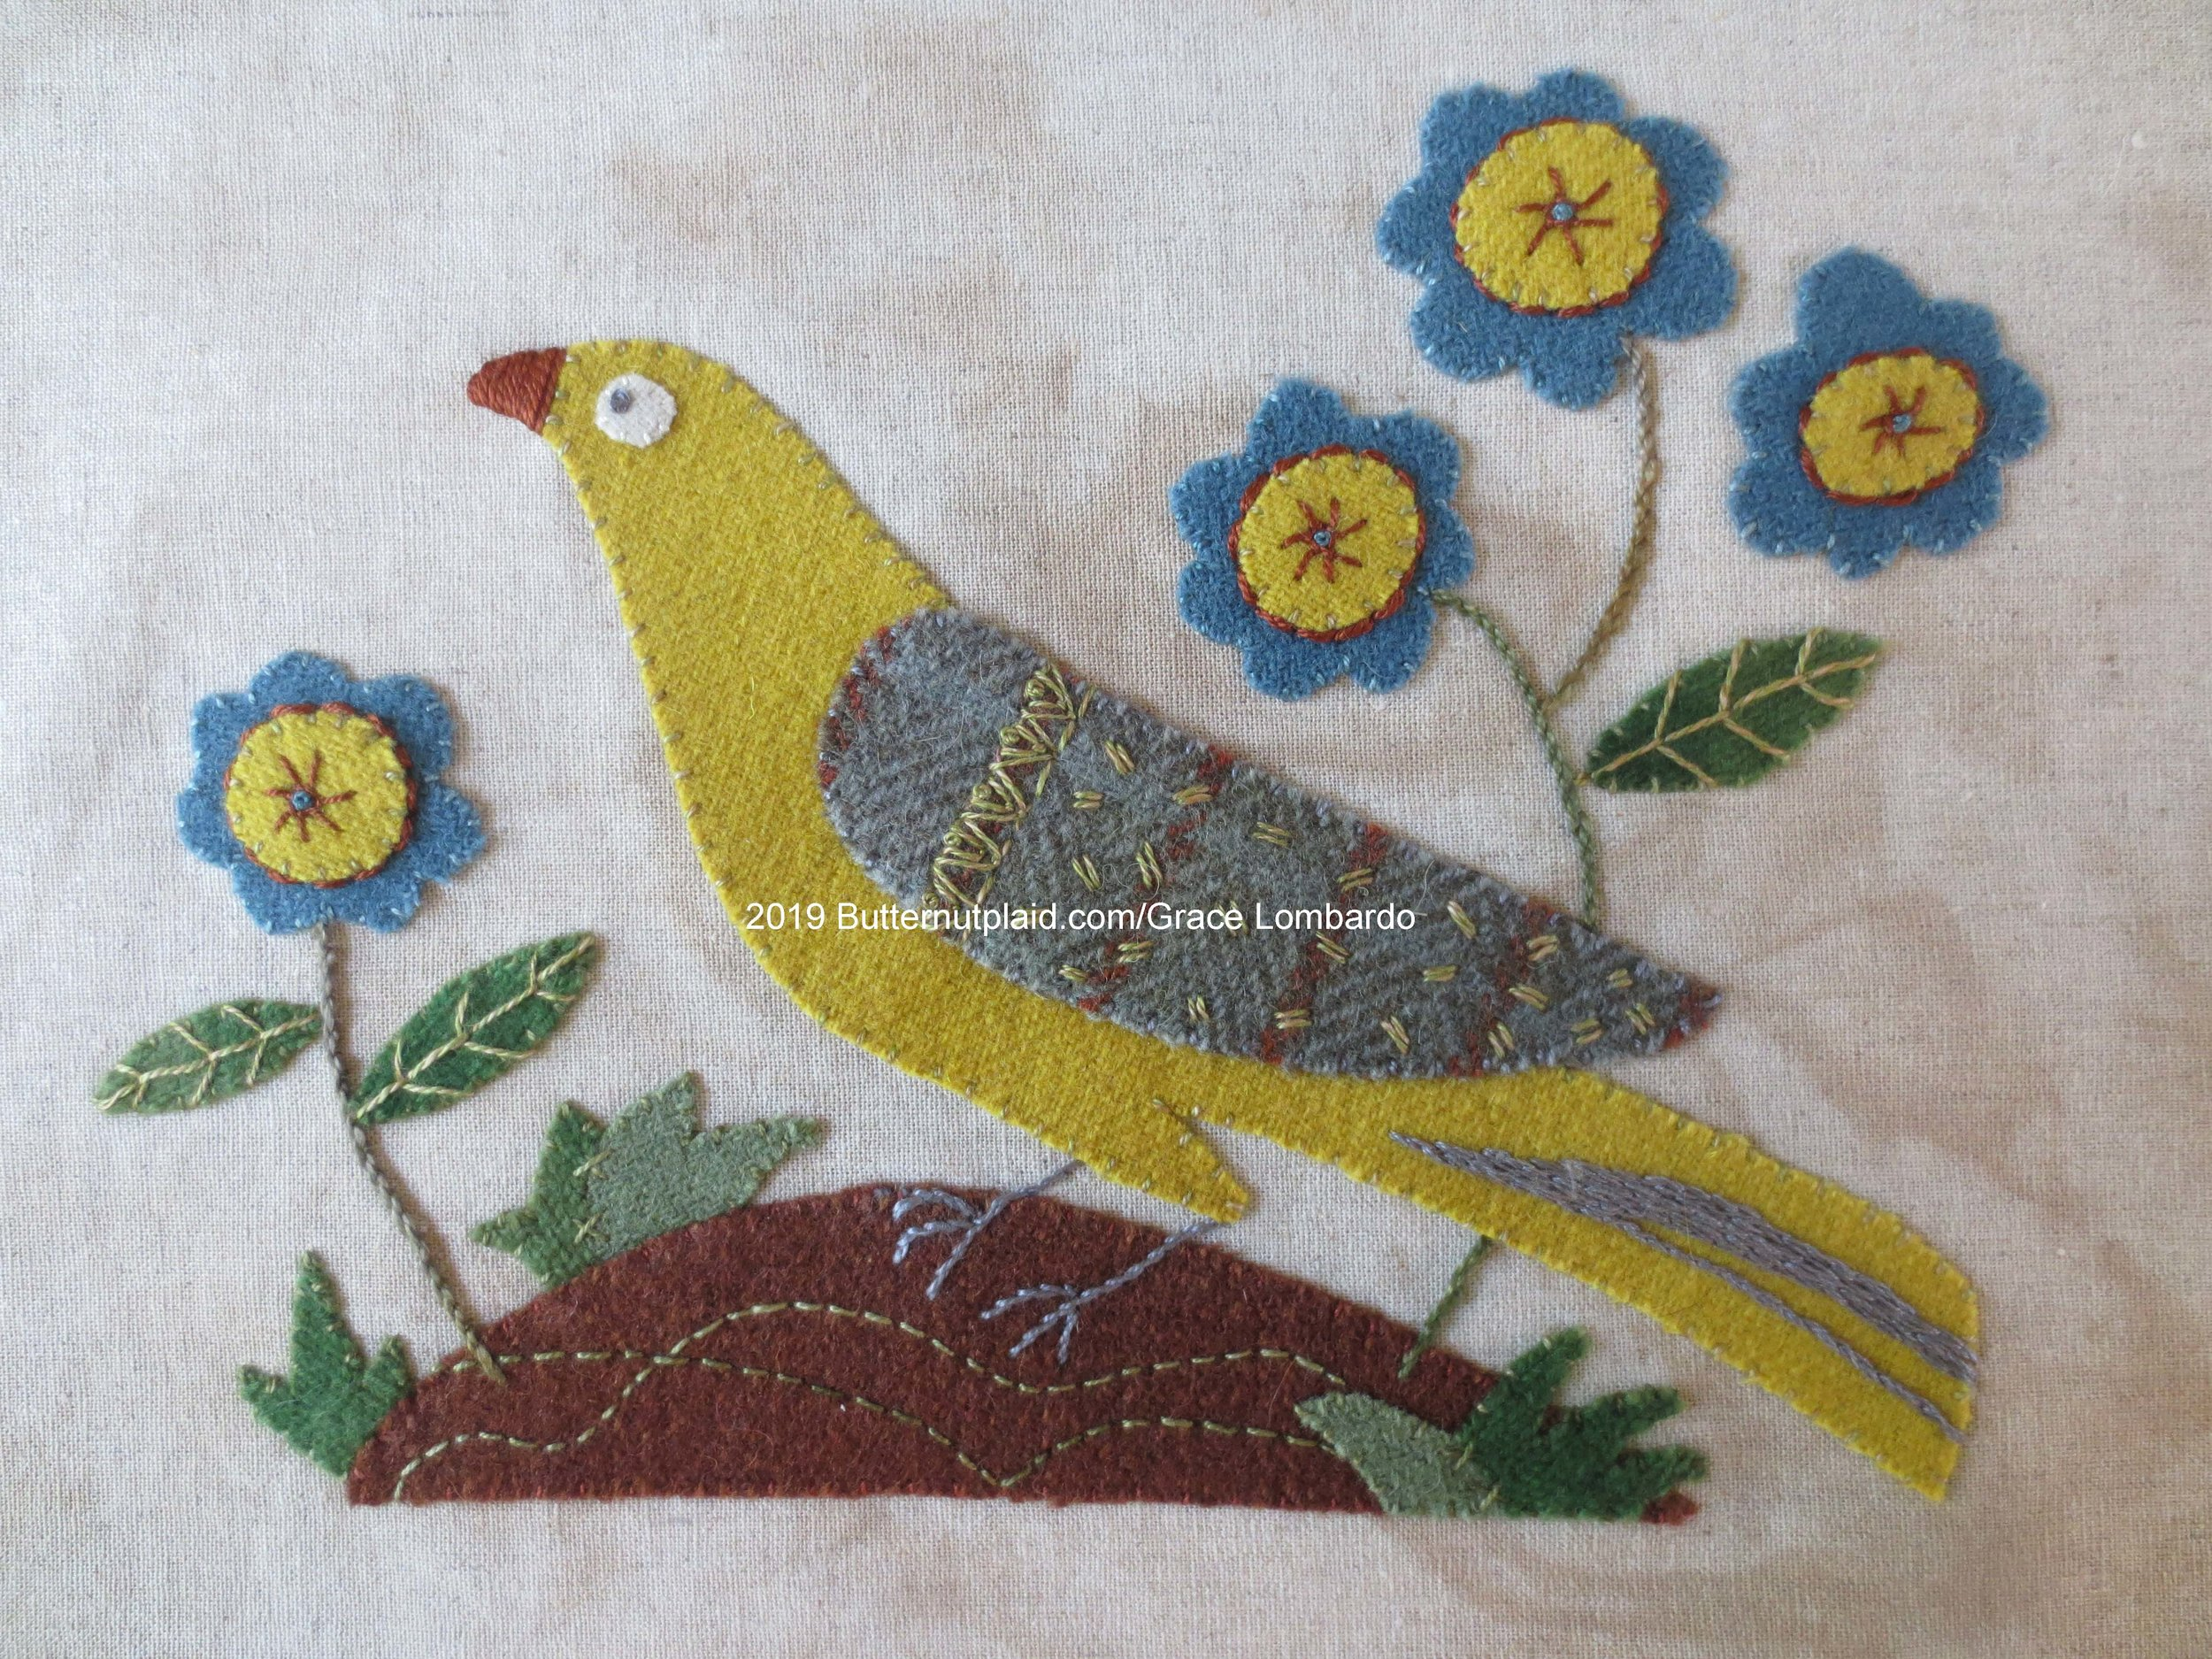 Audubon Inspired wool applique picture (6.25 x 9.0 inches)